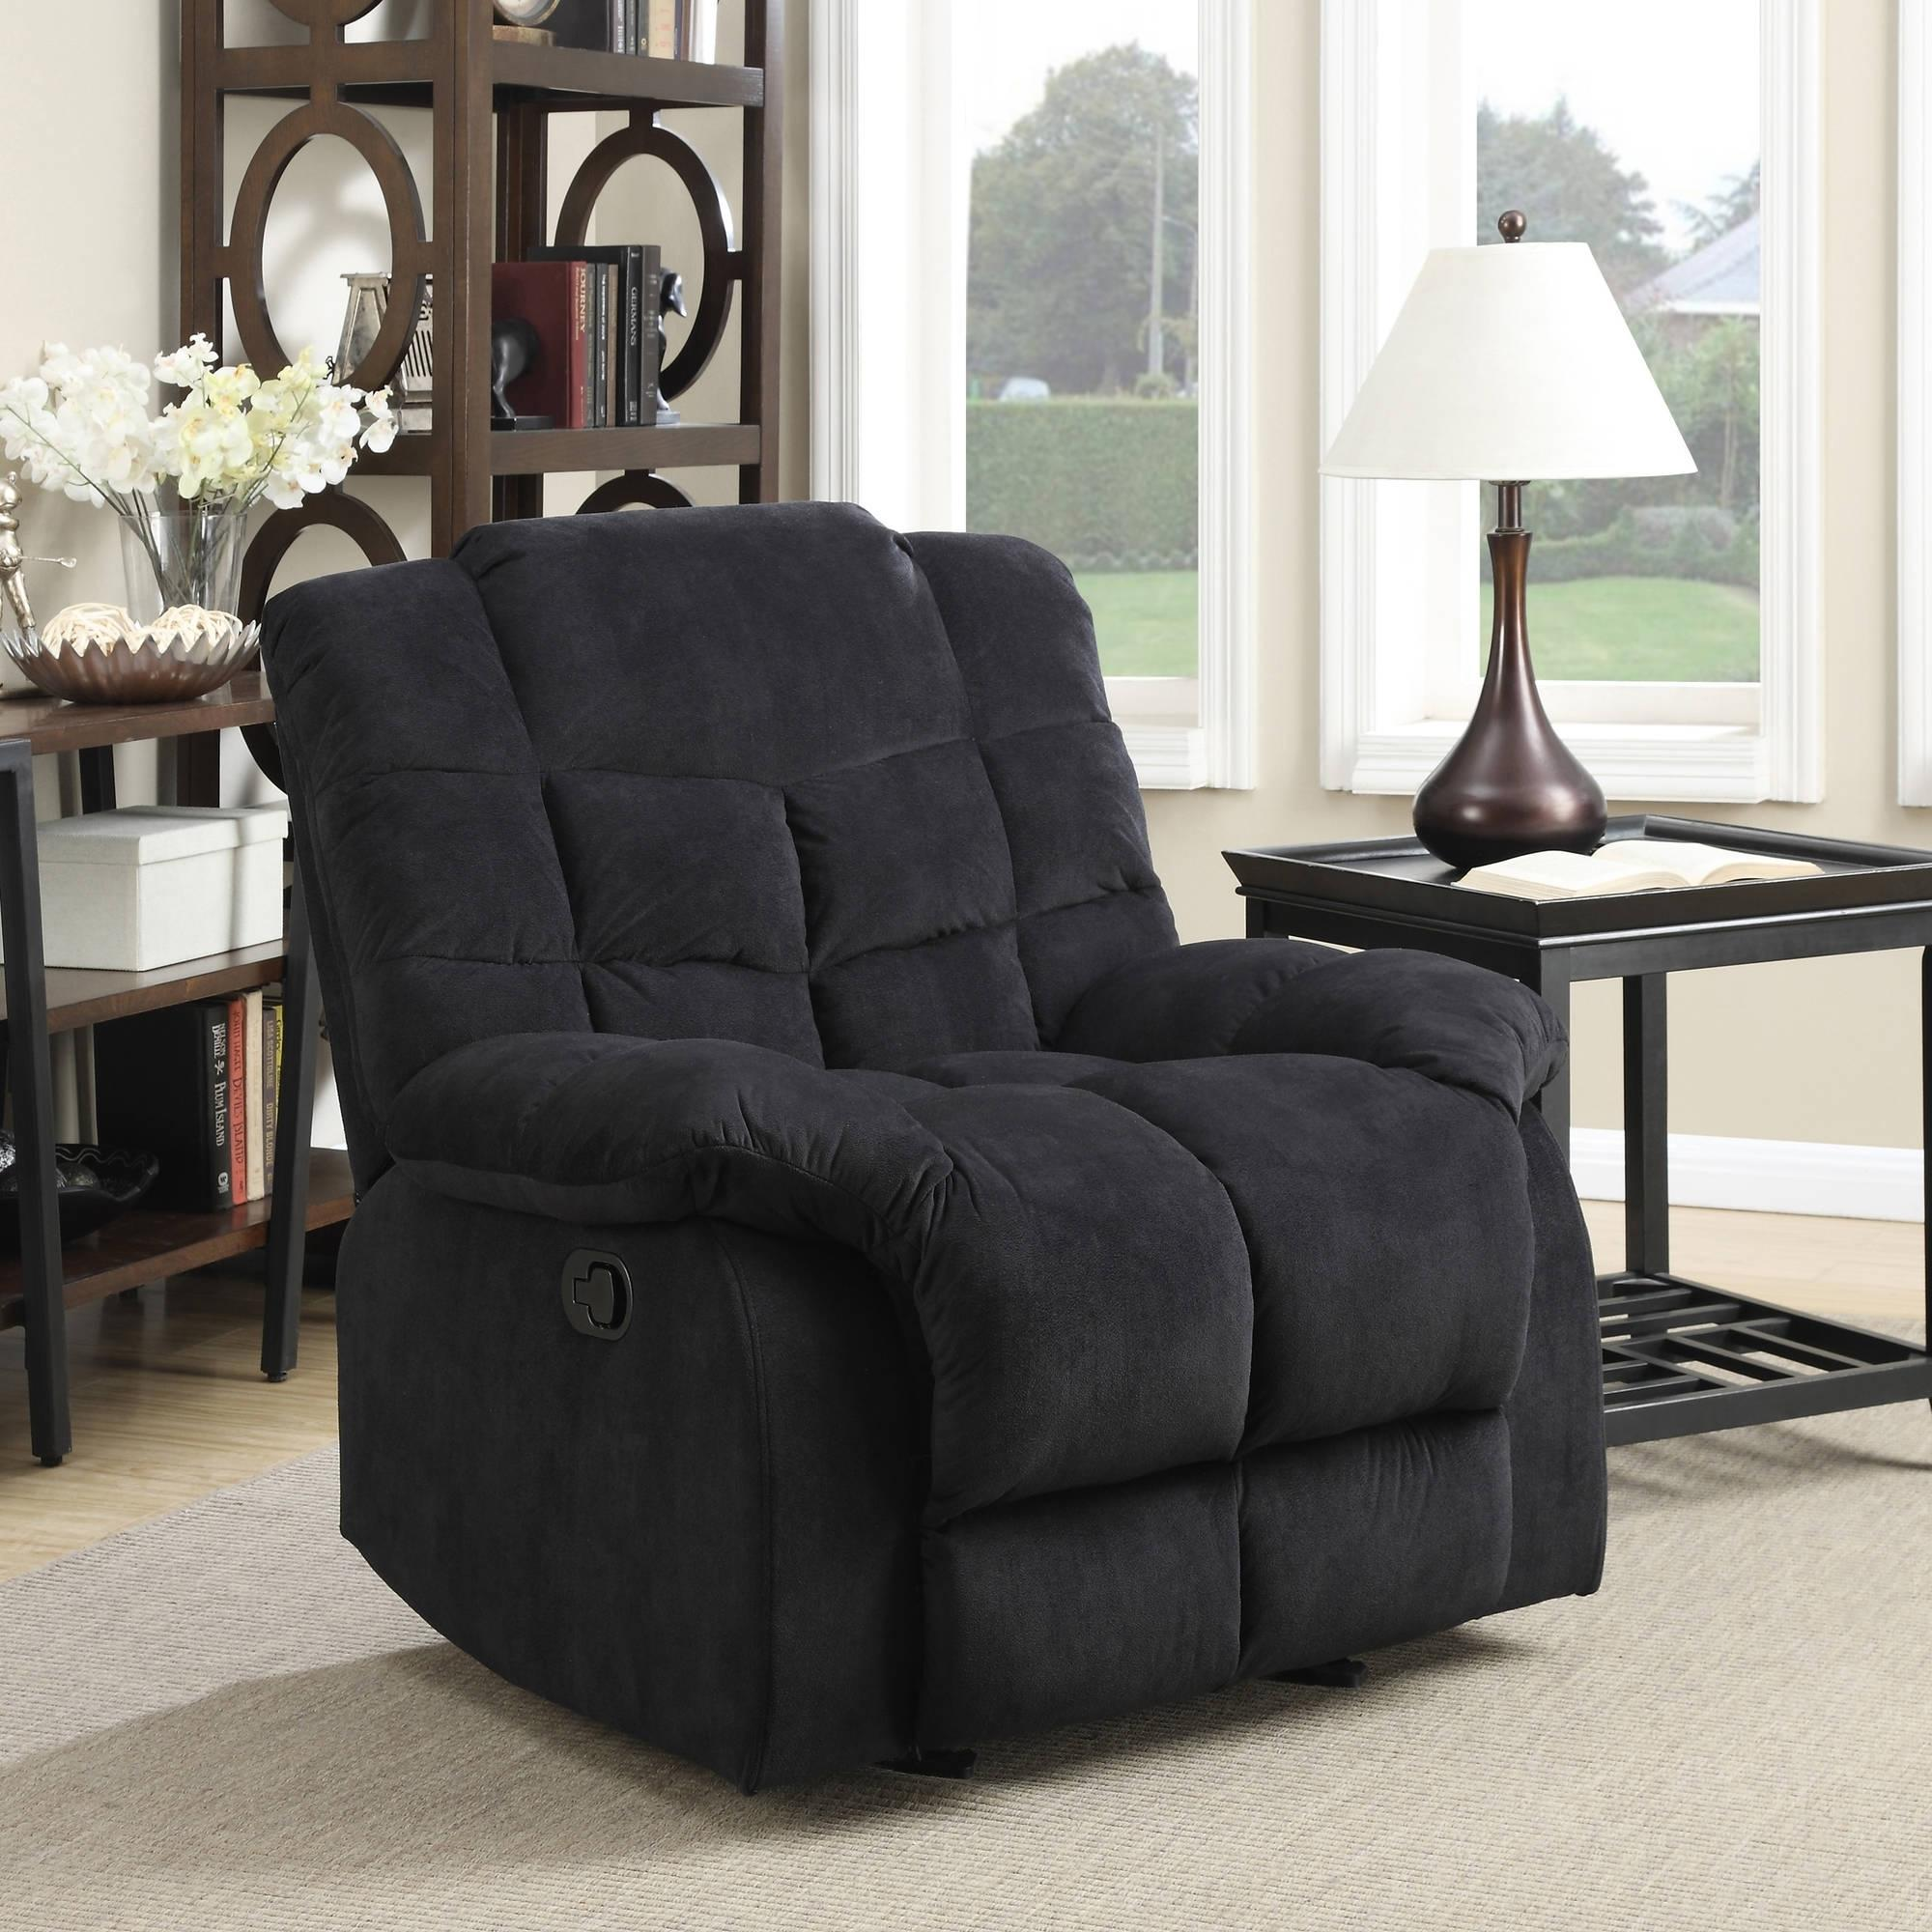 Superb How To Repair A Recliner Tips And Tricks From Ocoug Best Dining Table And Chair Ideas Images Ocougorg